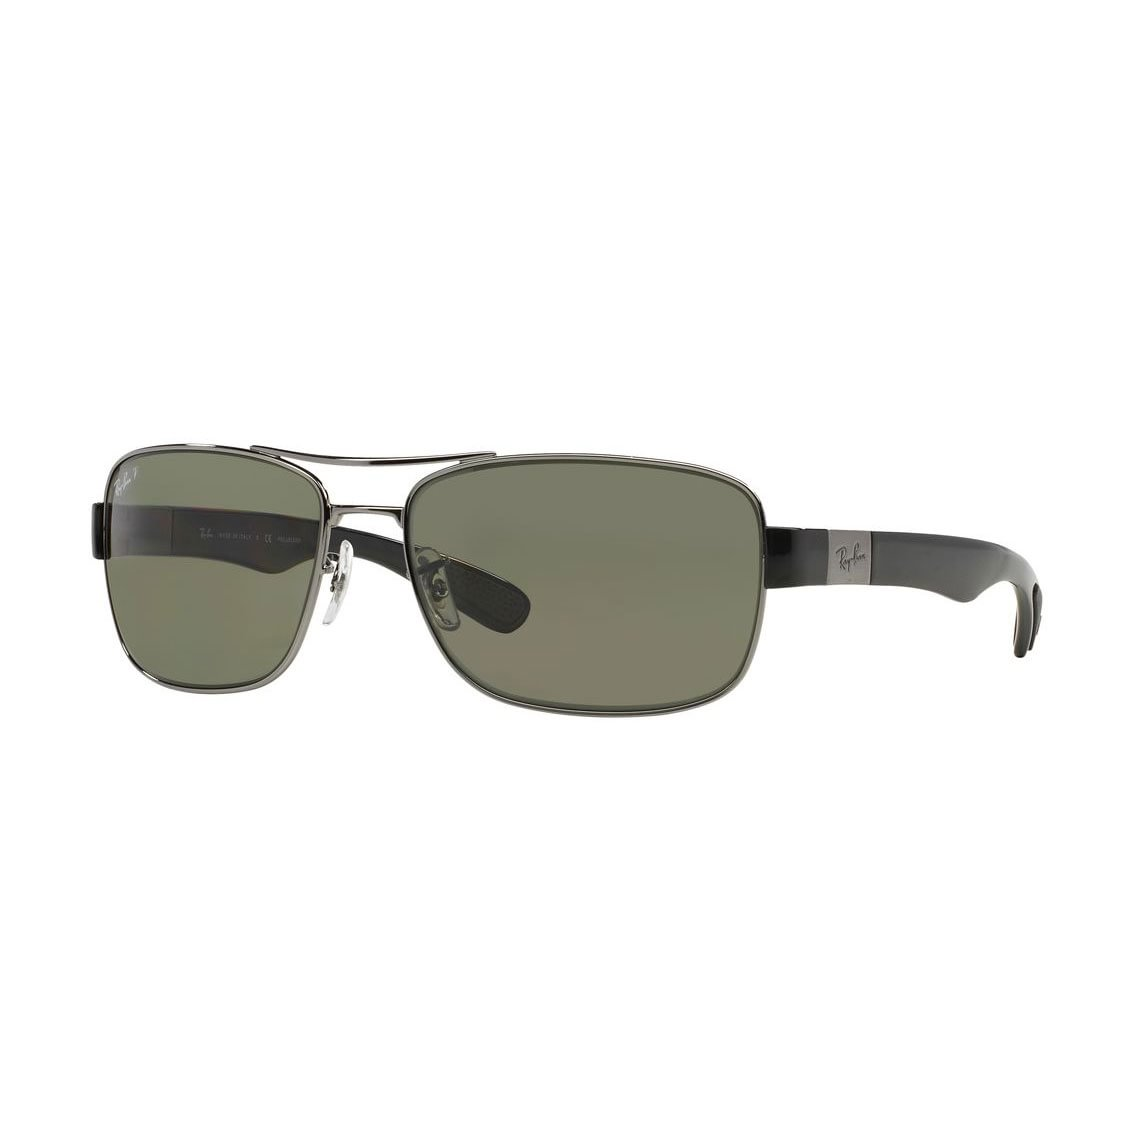 Ray-Ban RB3522 004/9A 6117